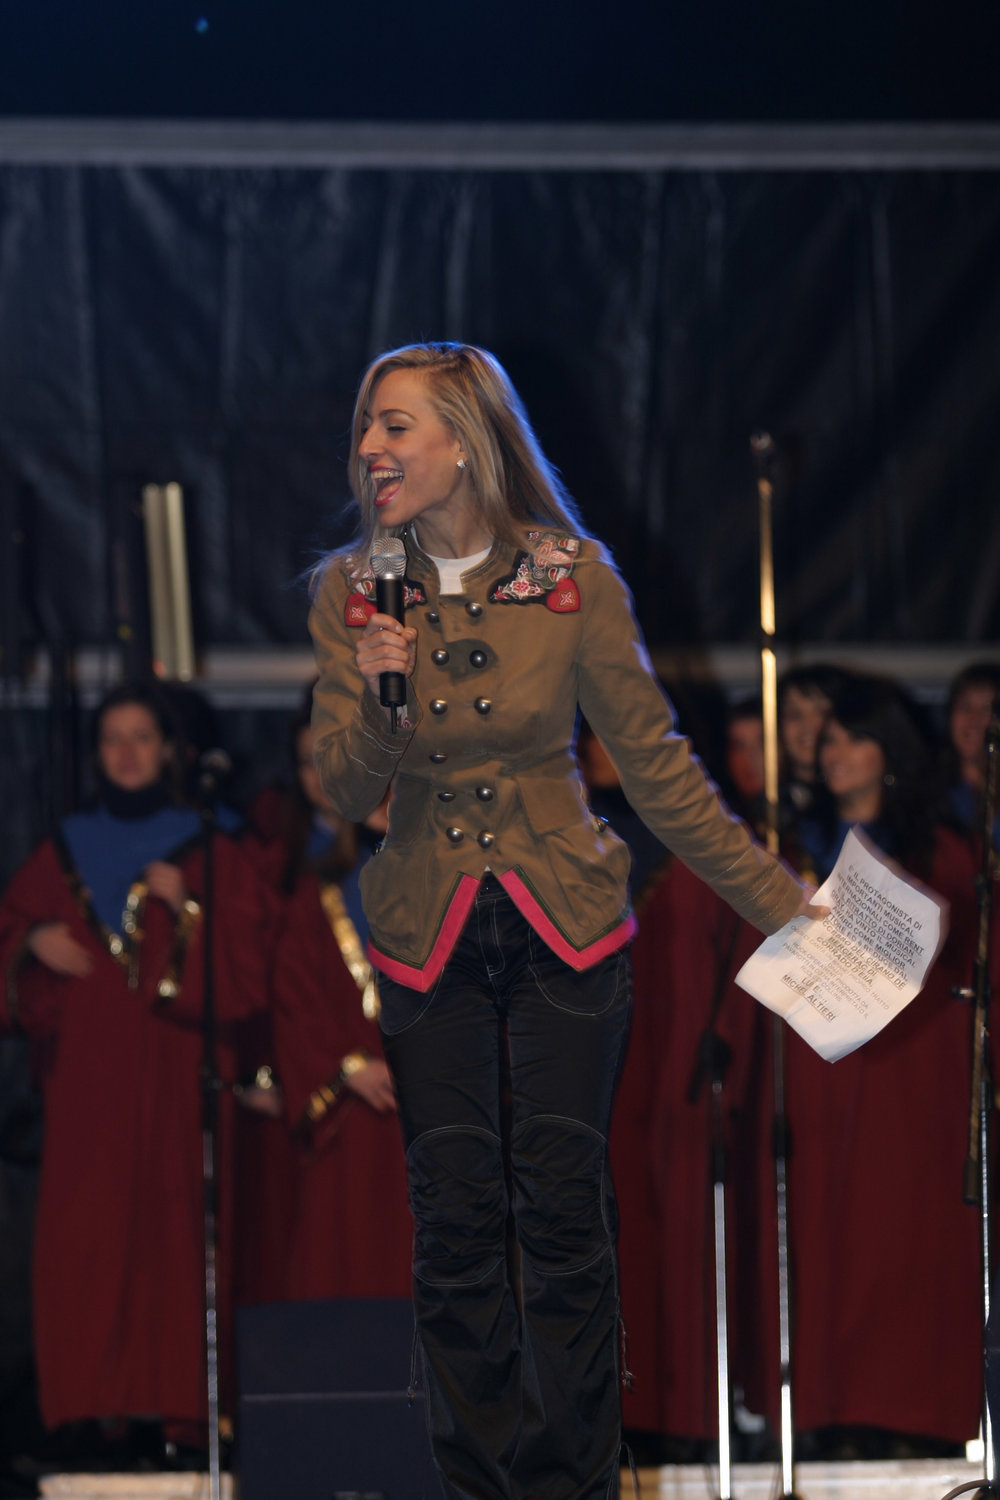 Jessica onstage hosting Milan's outdoor Christmas concert in the Duomo Plaza